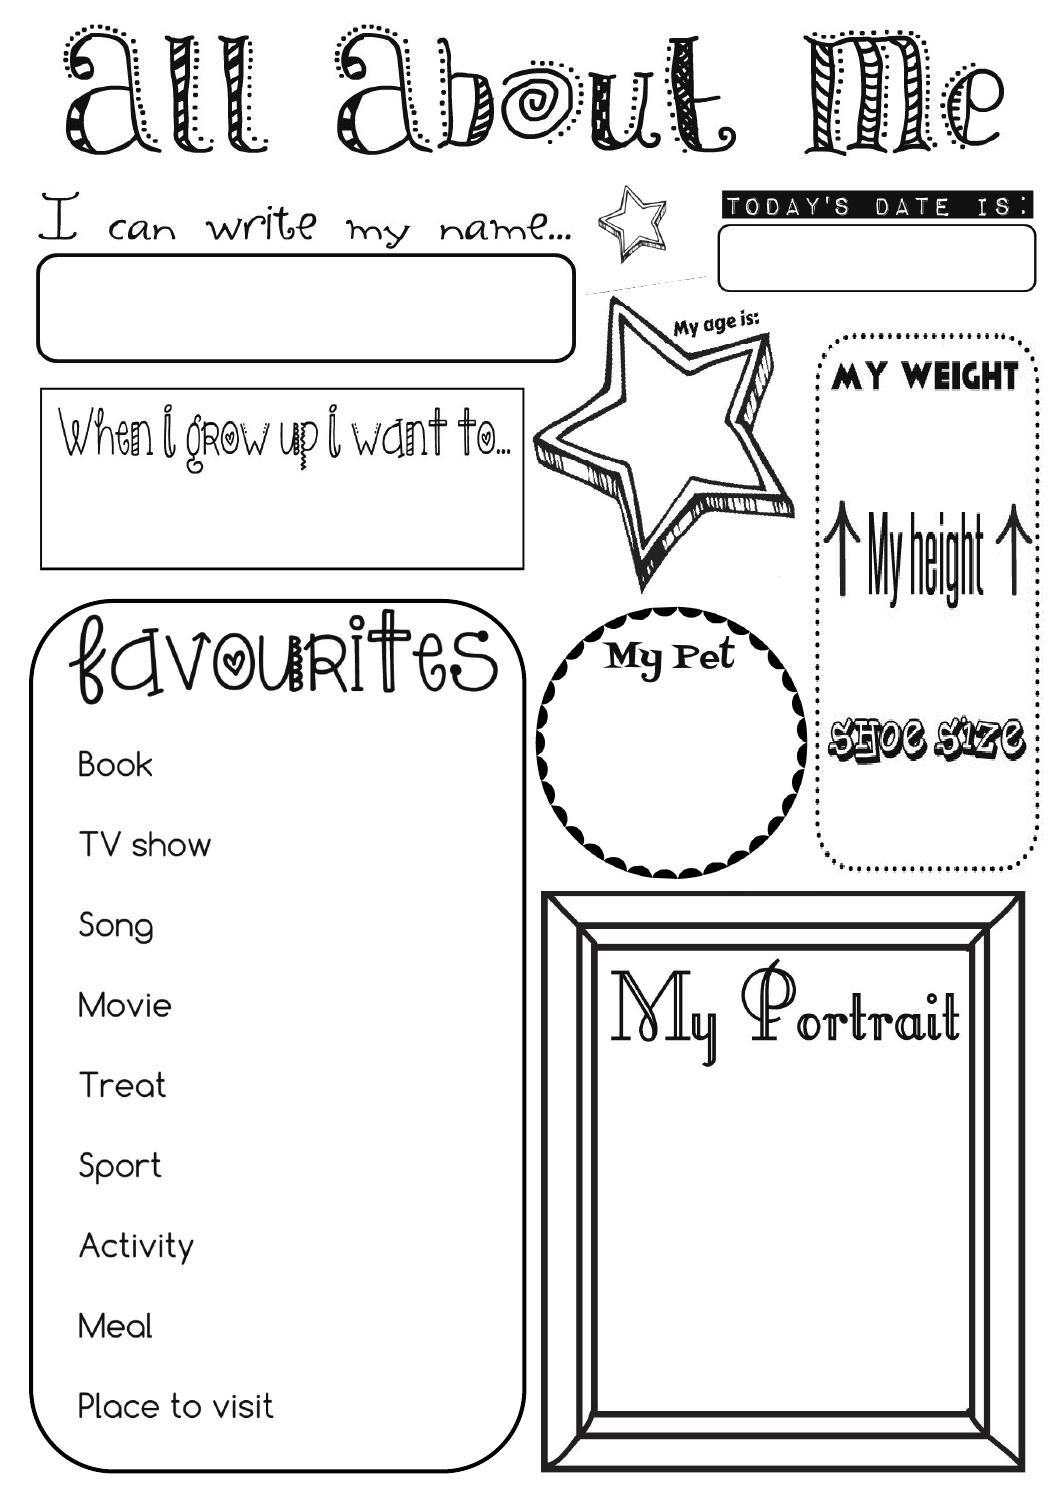 All About Me Activity Sheet By Ernie And Bird For Pre Schoolers Kindergarten Prep